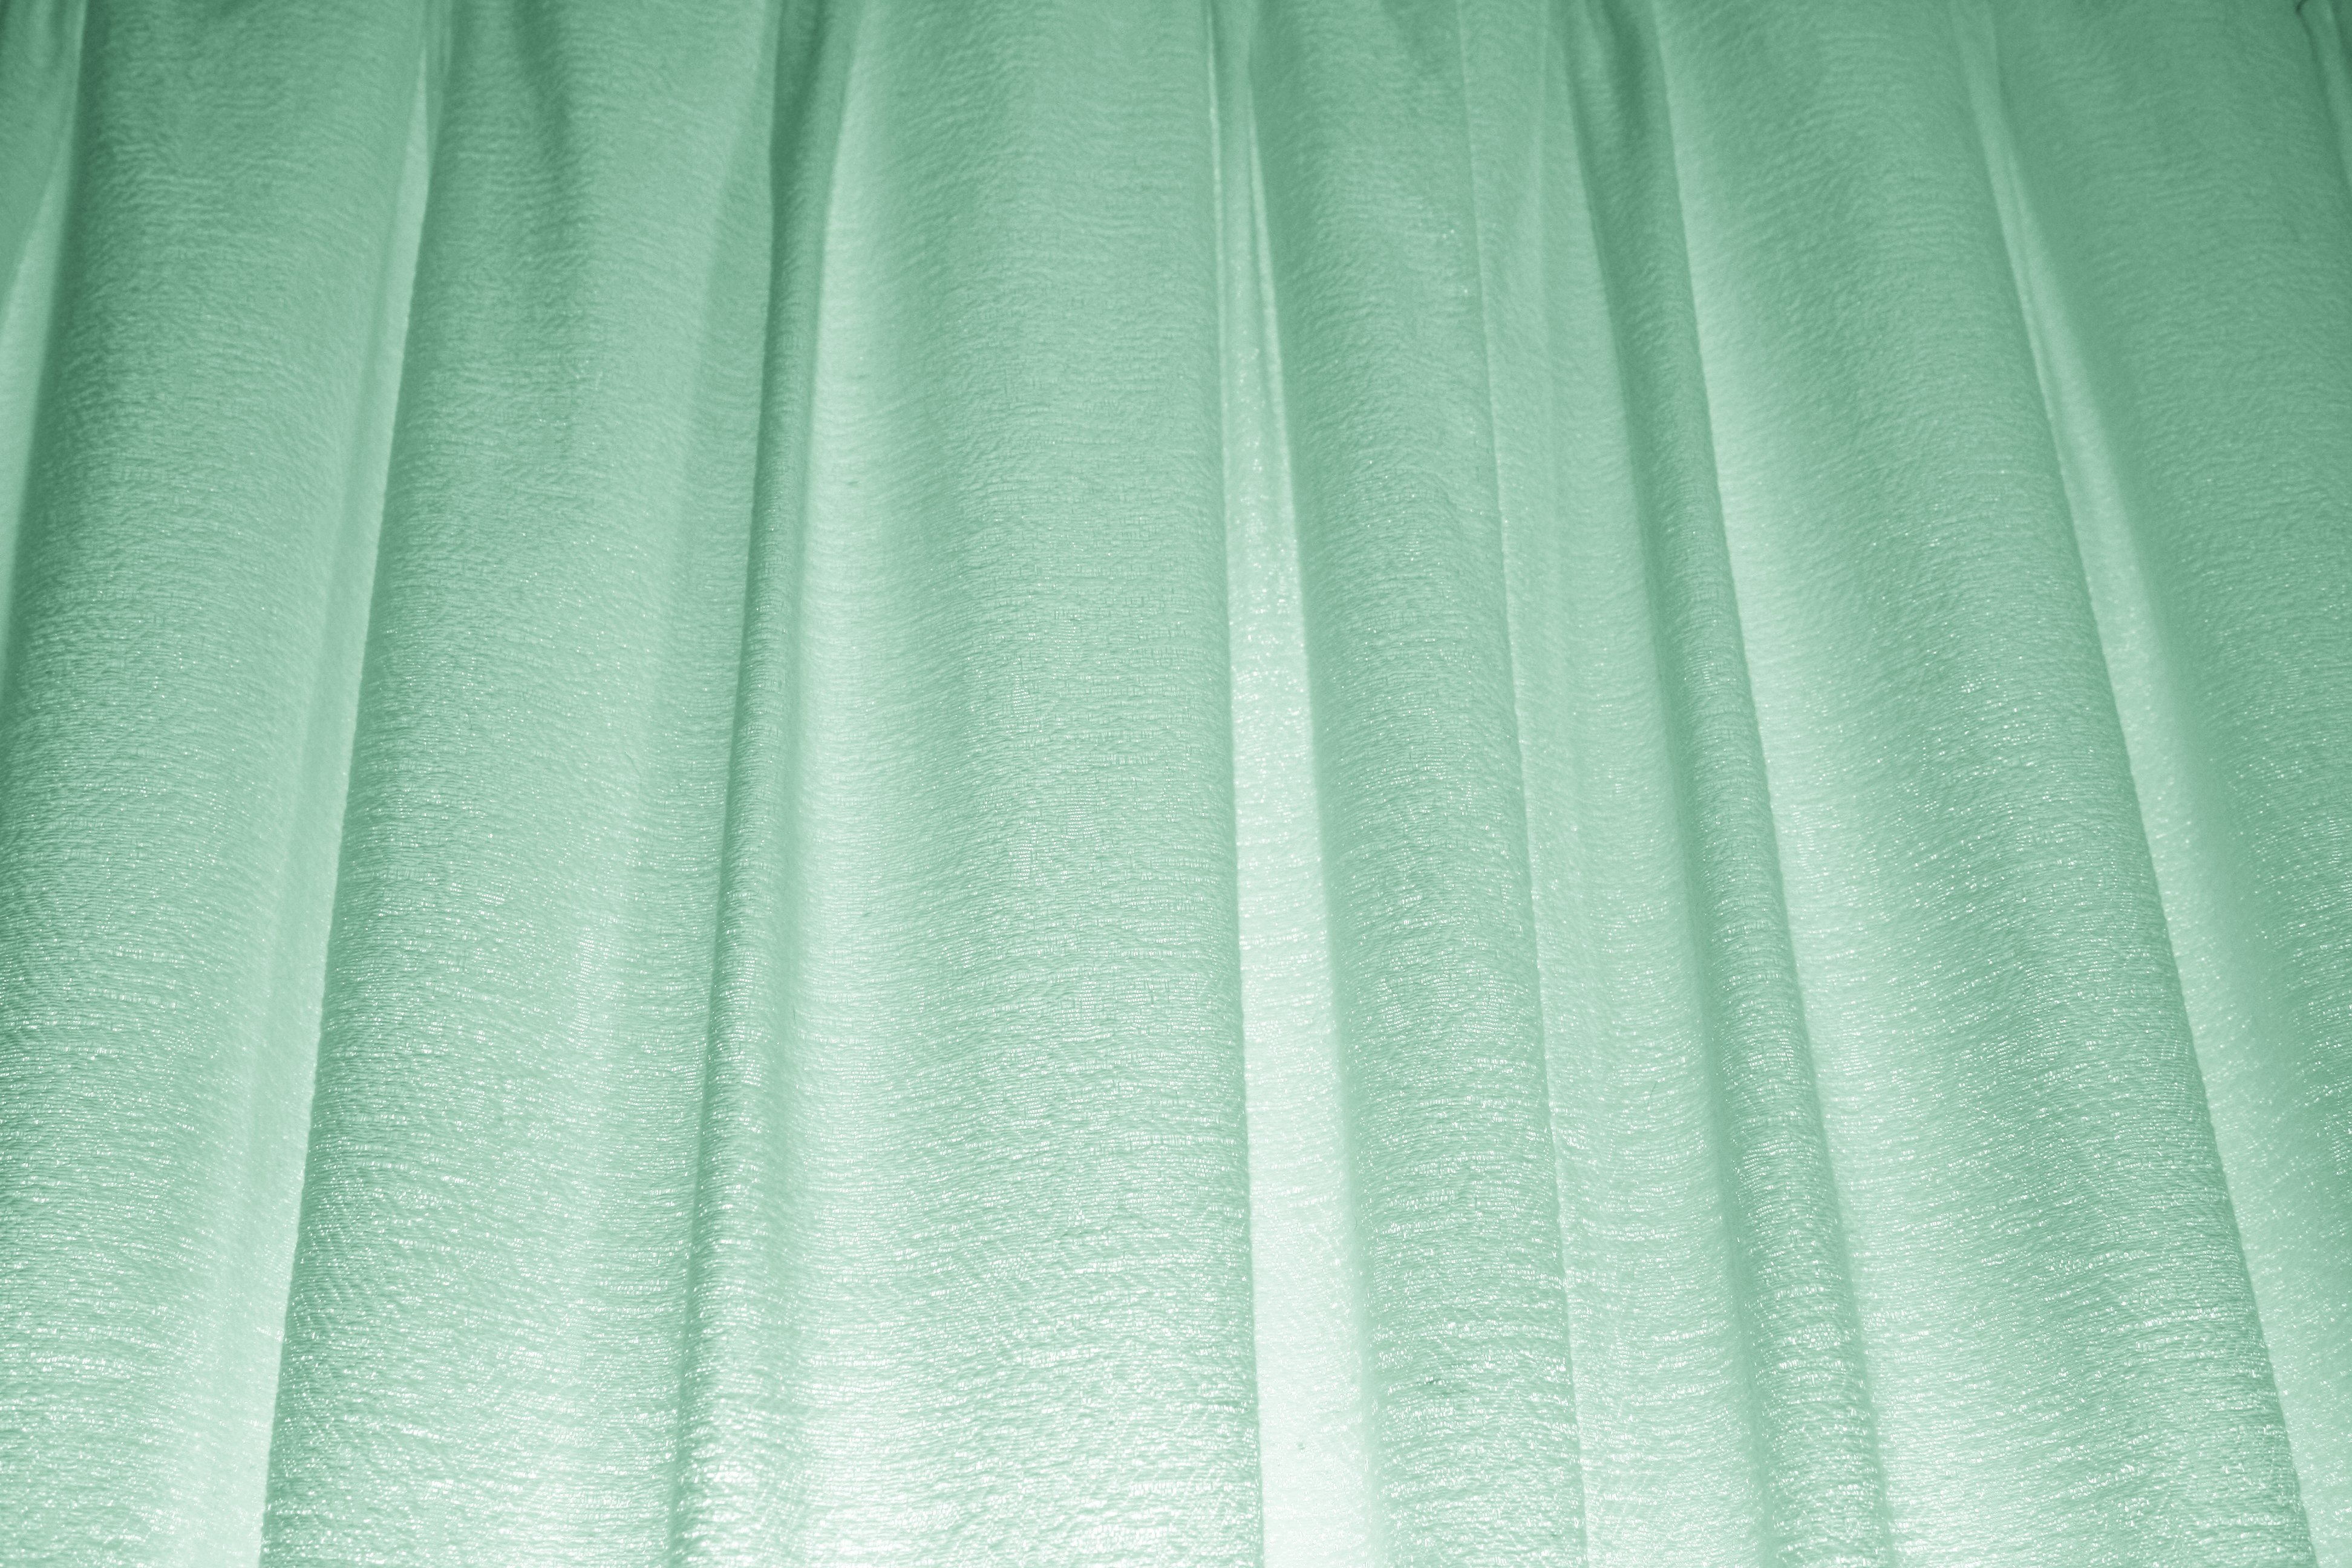 Curtains texture - Click Here To Download Full Resolution Image